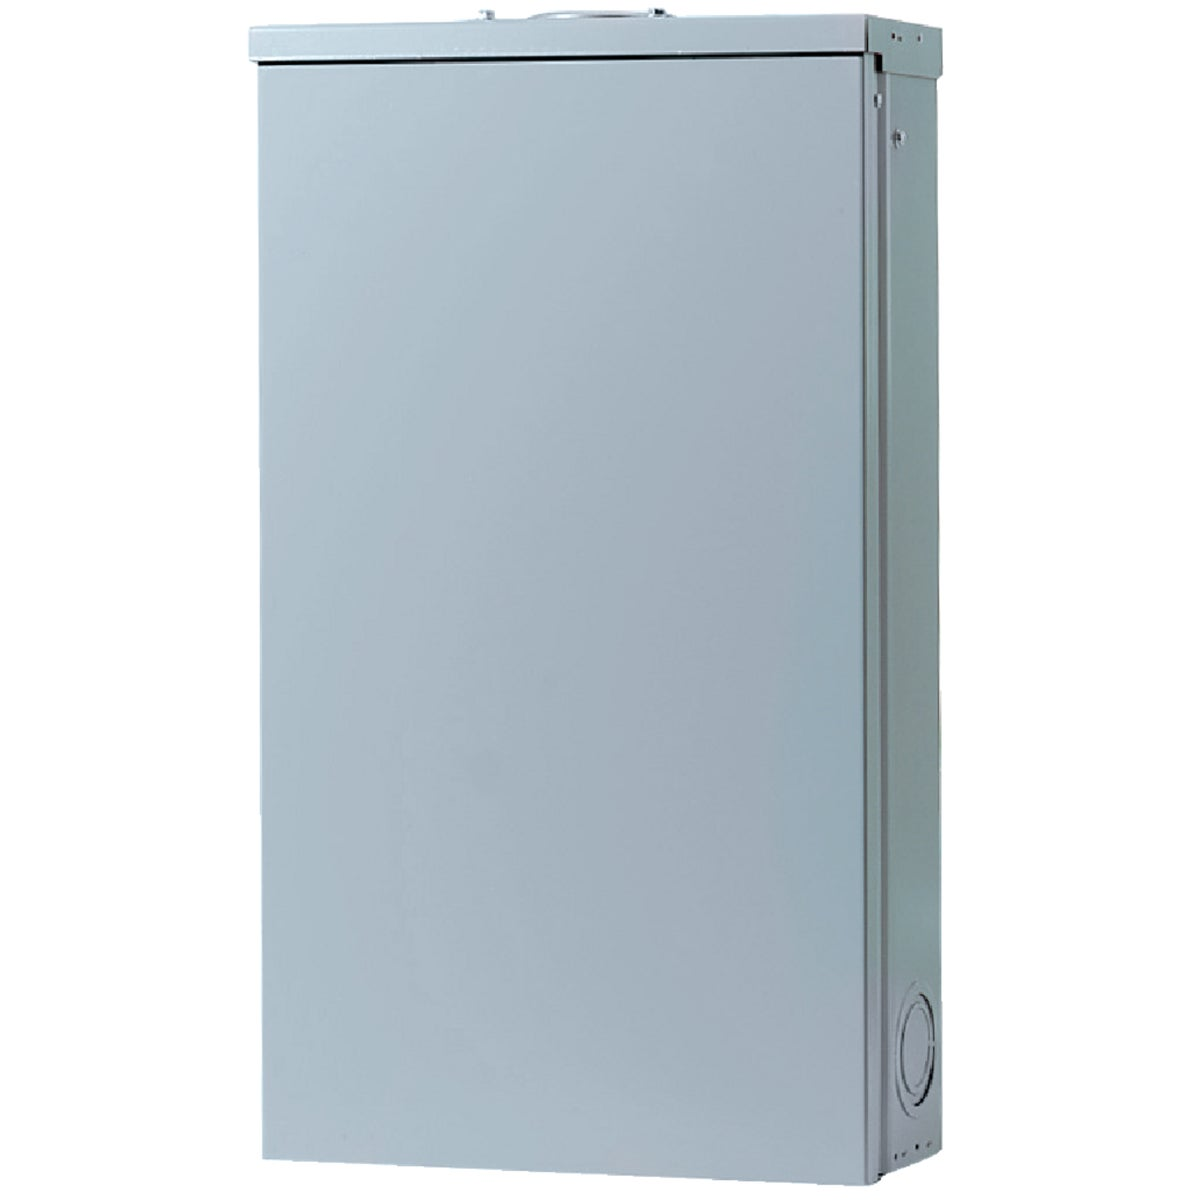 MOBILE HOME LOAD CENTER - BR816B200RF by Eaton Corporation